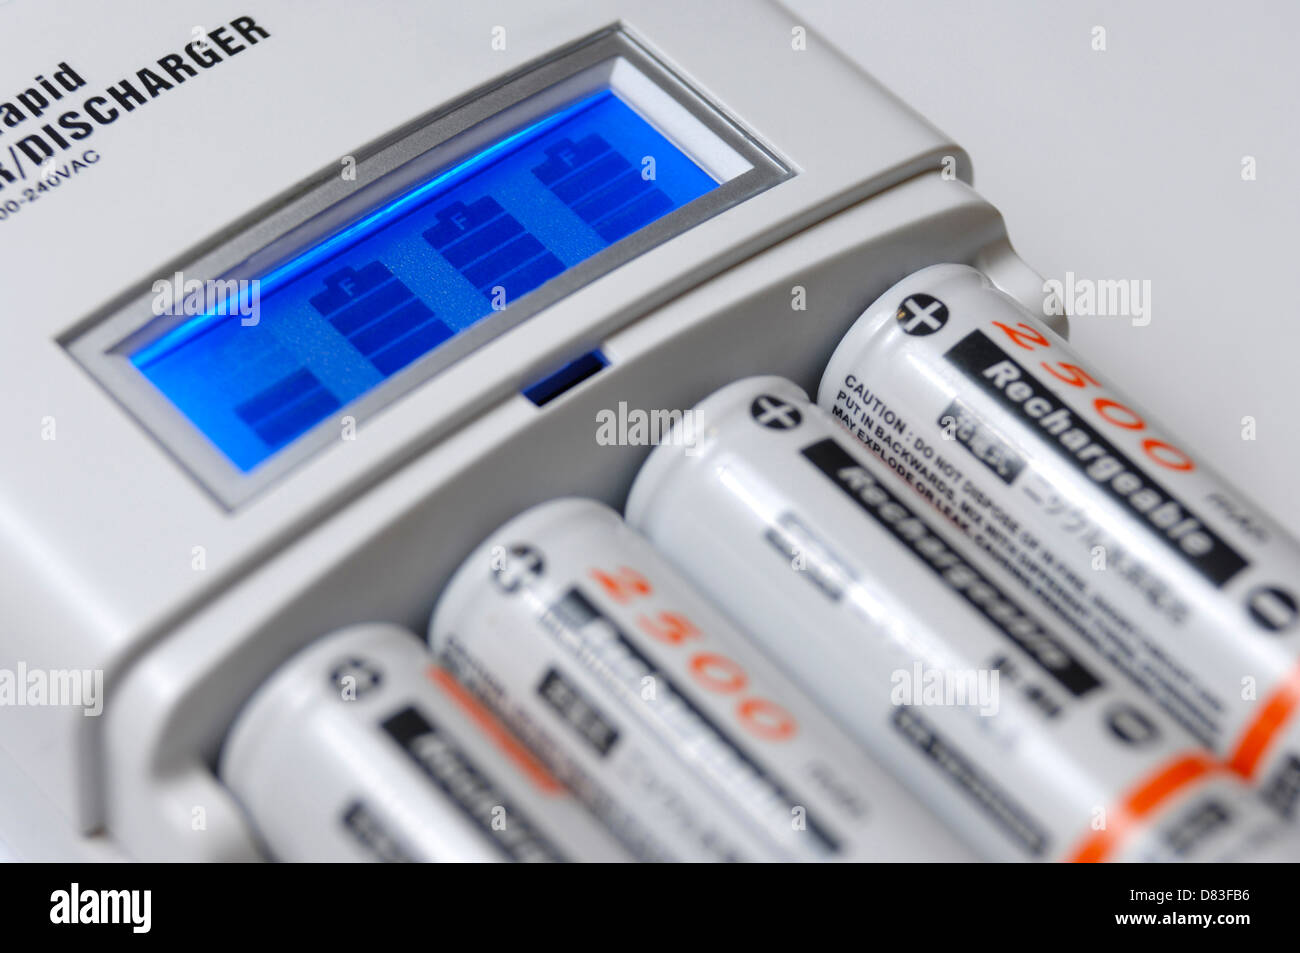 Smart Rapid AA Battery Charger With LCD Showing The Charge Level And Four Rechargeable NiMh Batteries